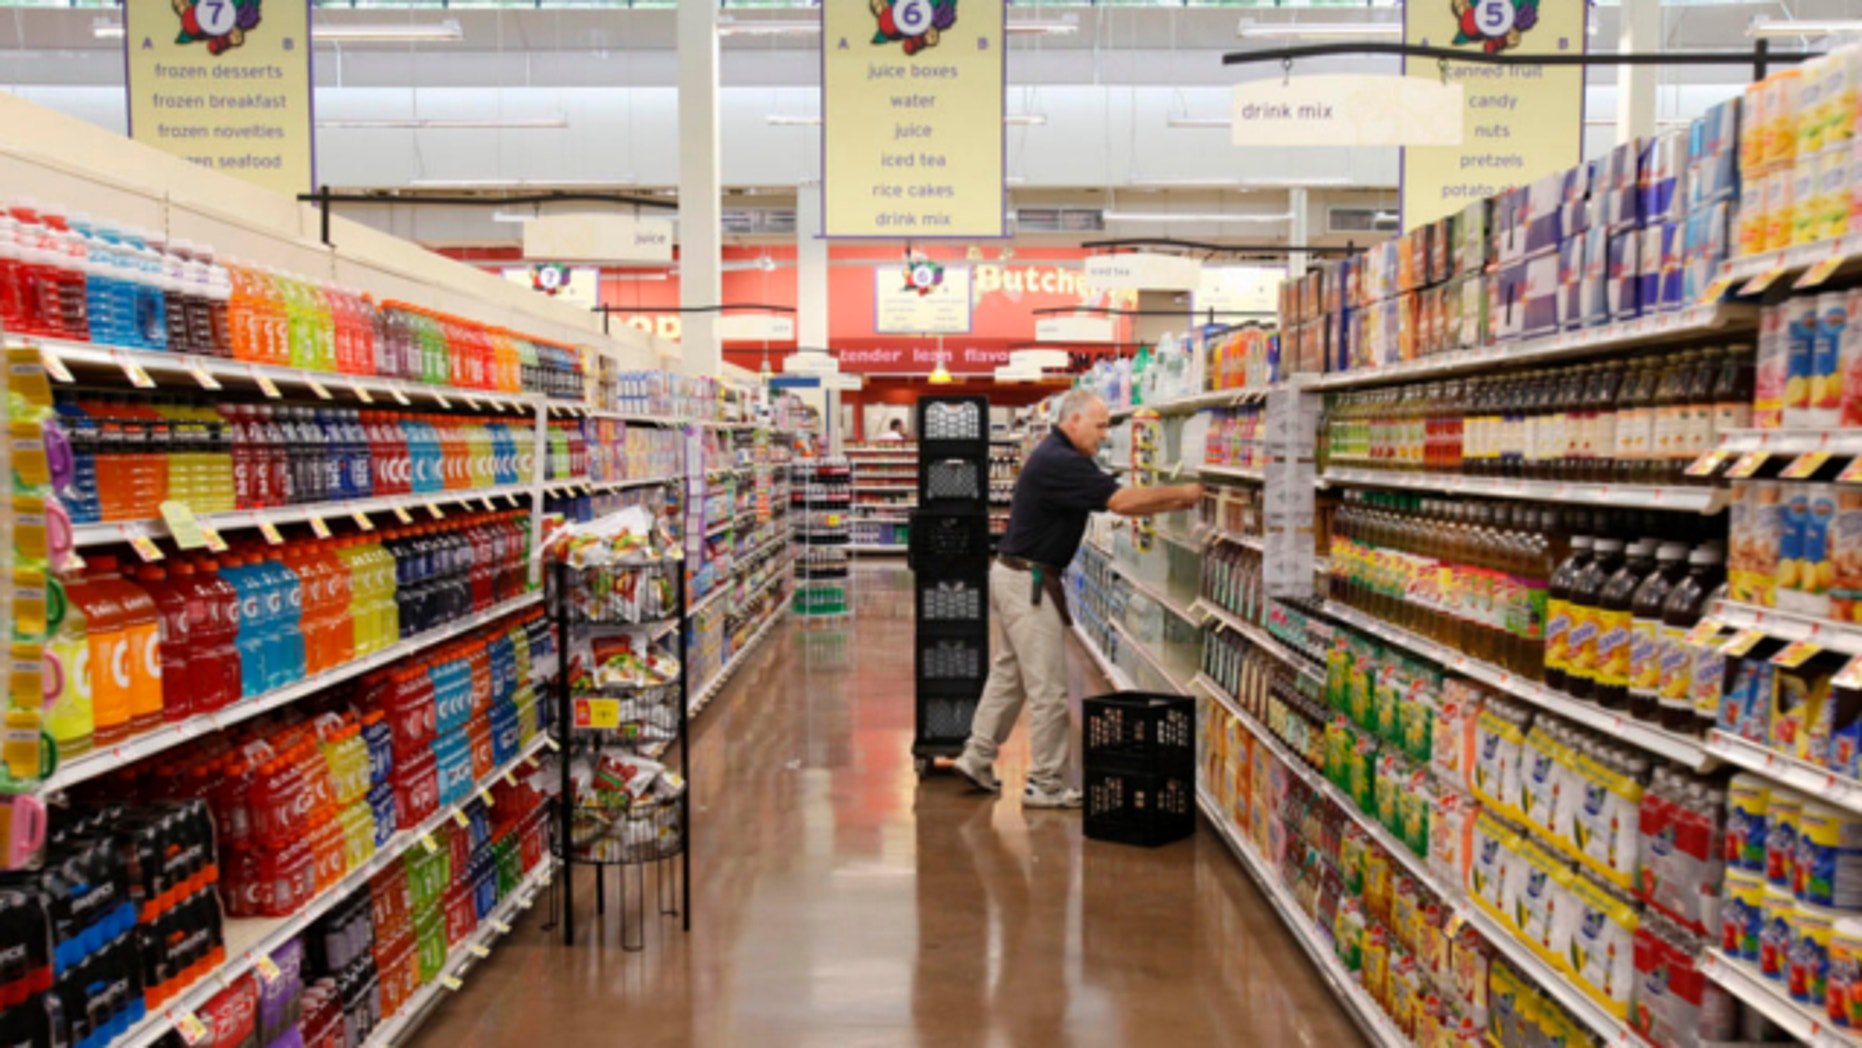 July 22, 2009: A worker stocks an aisle at Hannaford supermarket in Augusta, Ga.